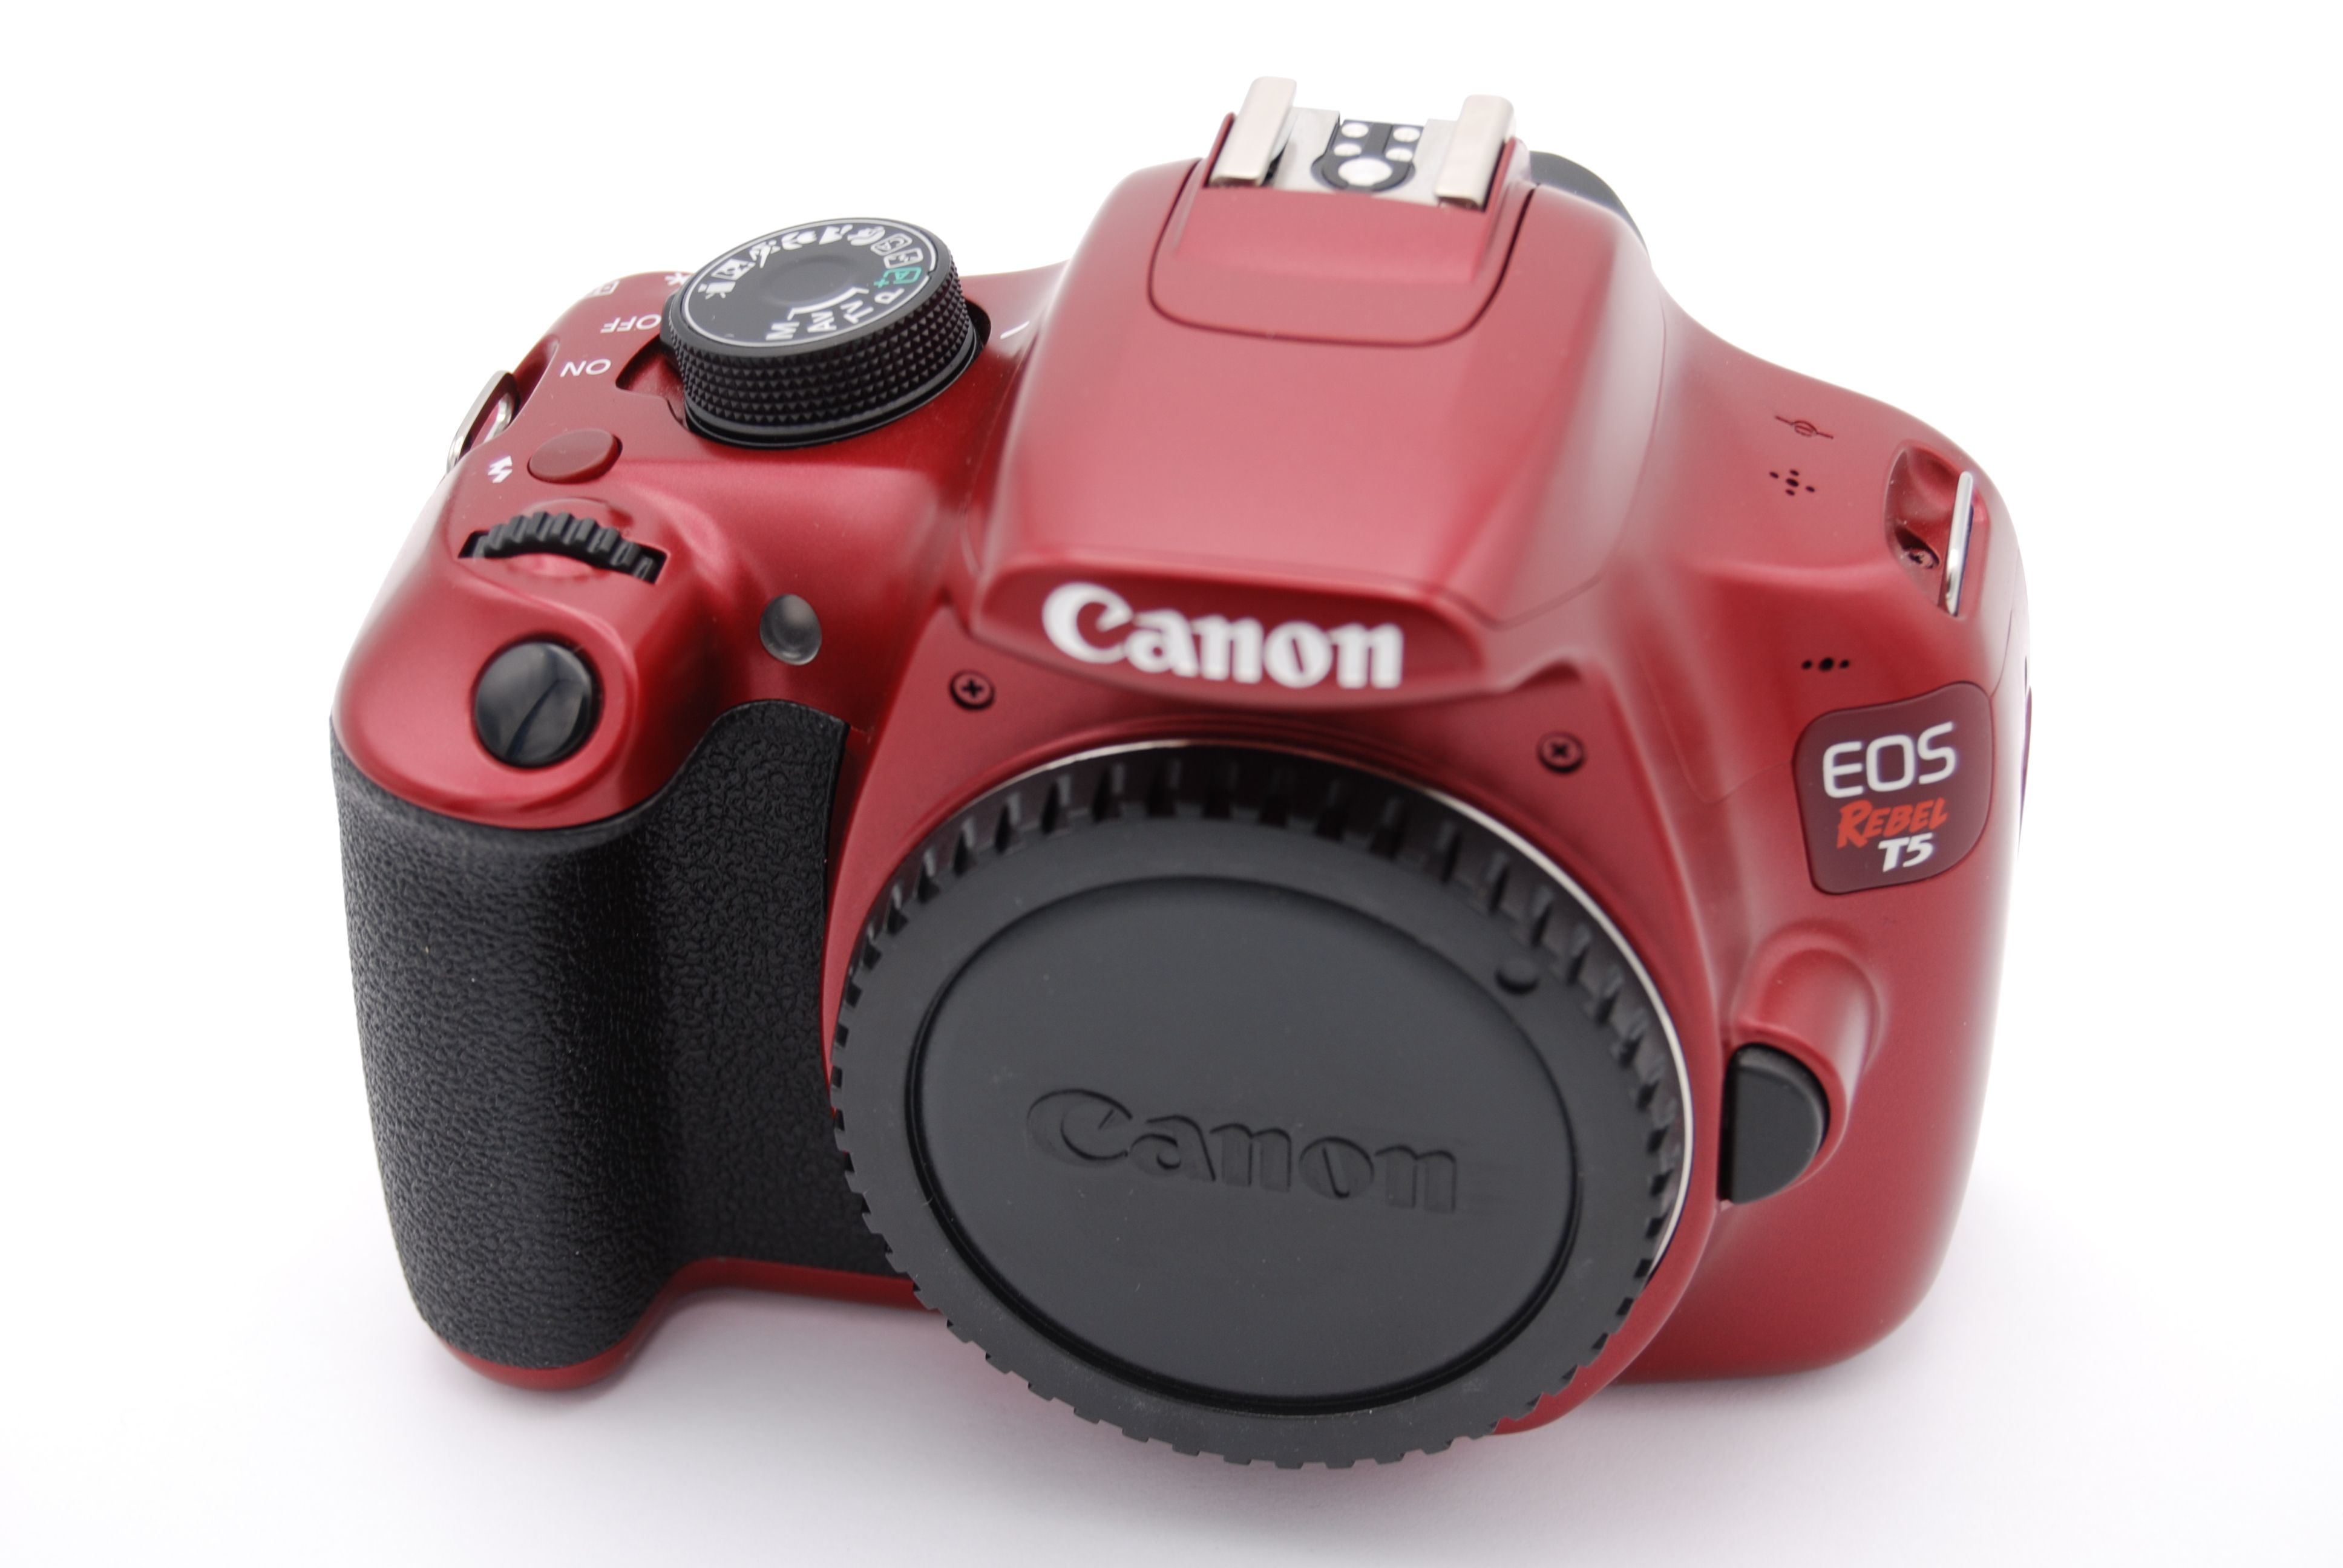 Details About Canon Eos Rebel T5 Eos 1200d 18 0mp Digital Slr Camera Red Body Only